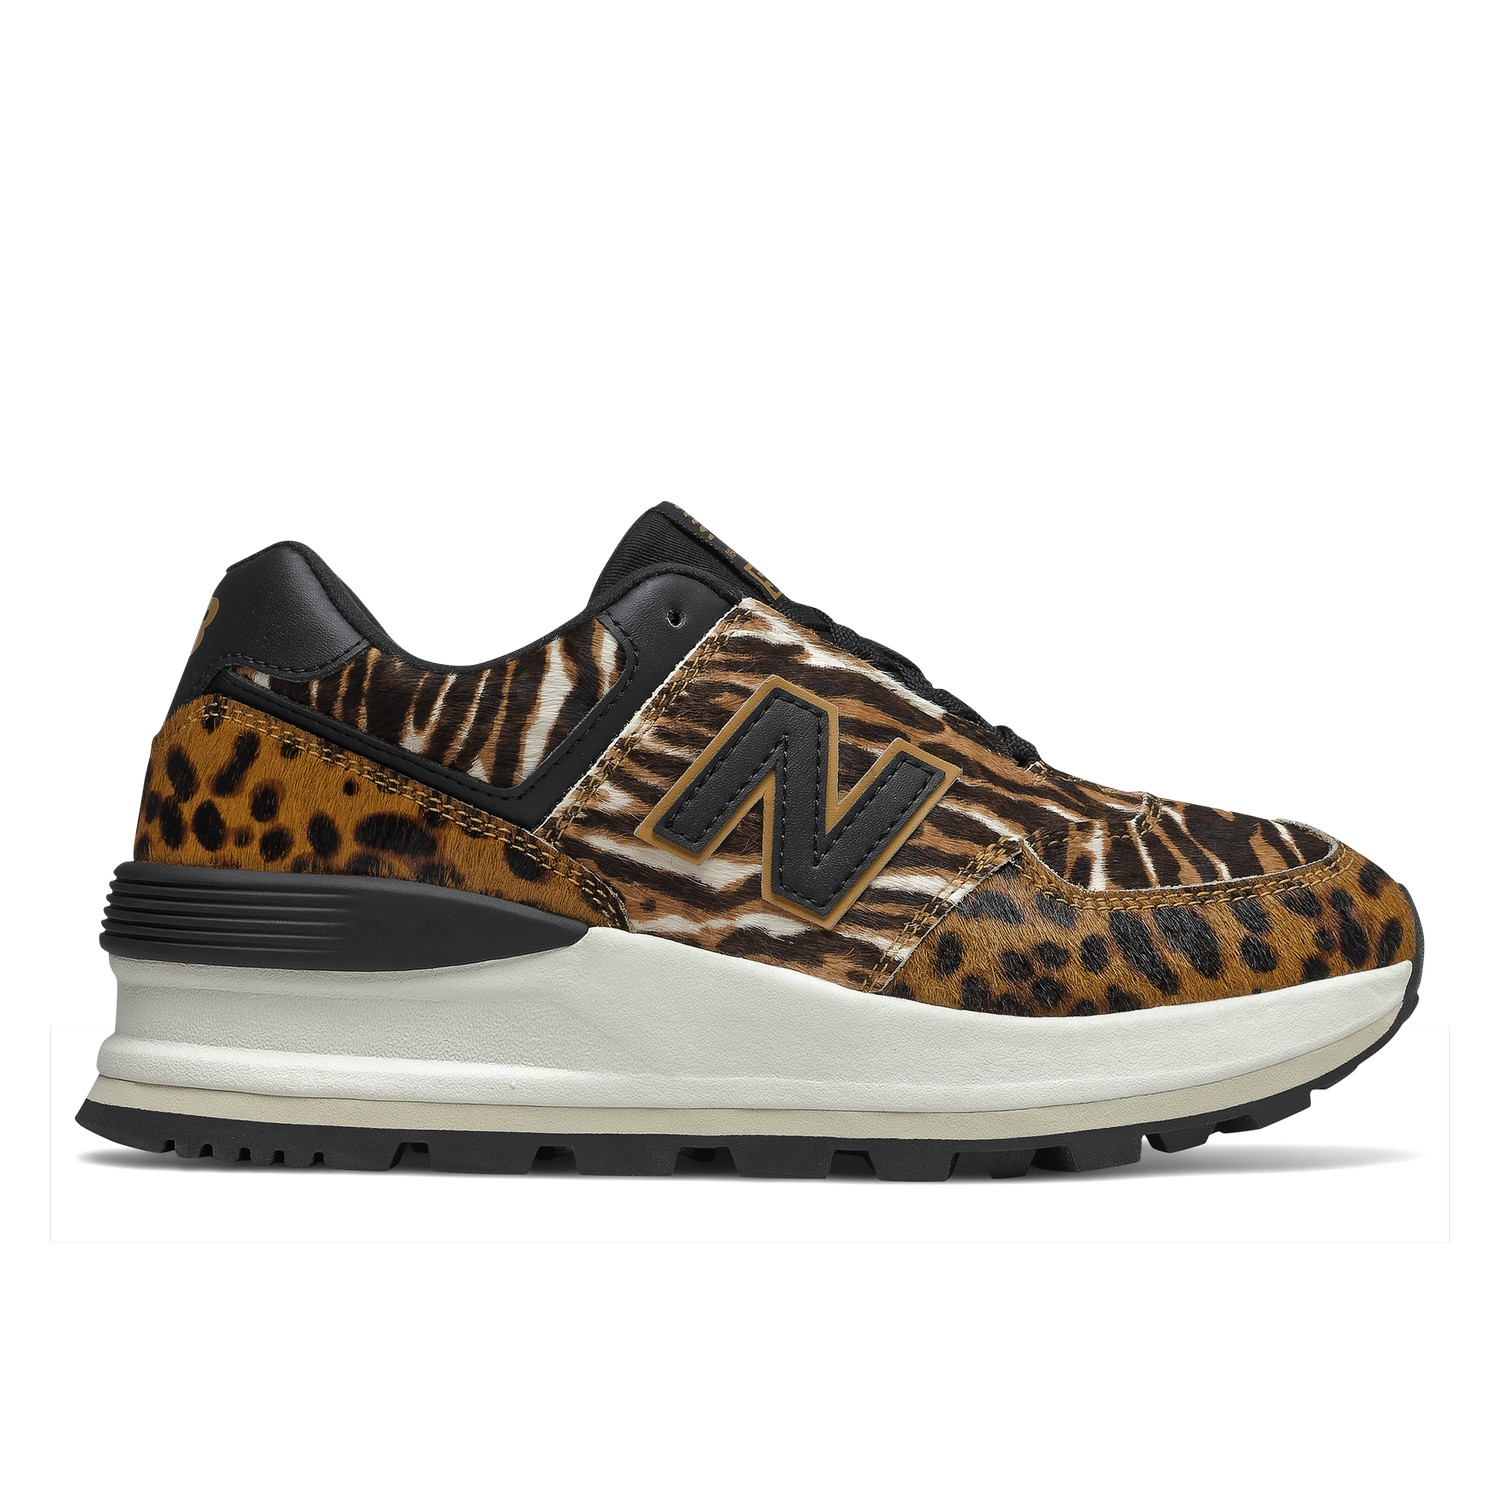 New Balance 574 EMISSIONS sneakers woman leopard